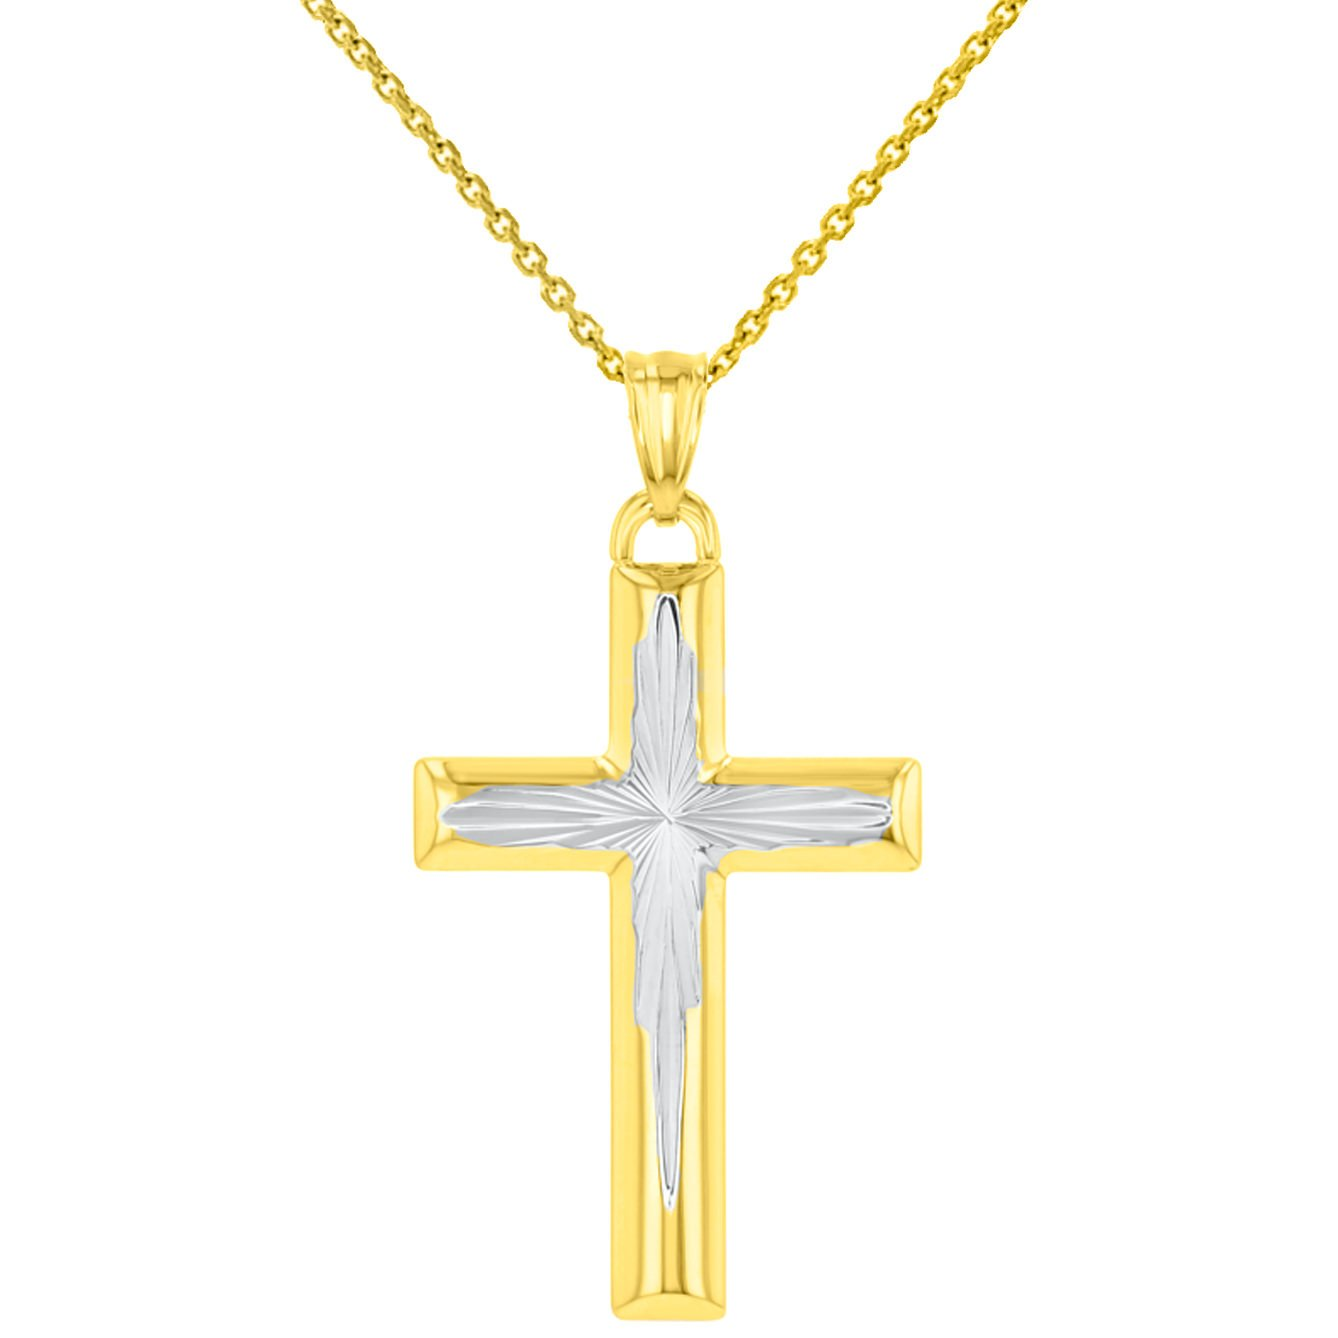 High Polished 14K Yellow Gold Textured Cross Pendant Necklace, 16''